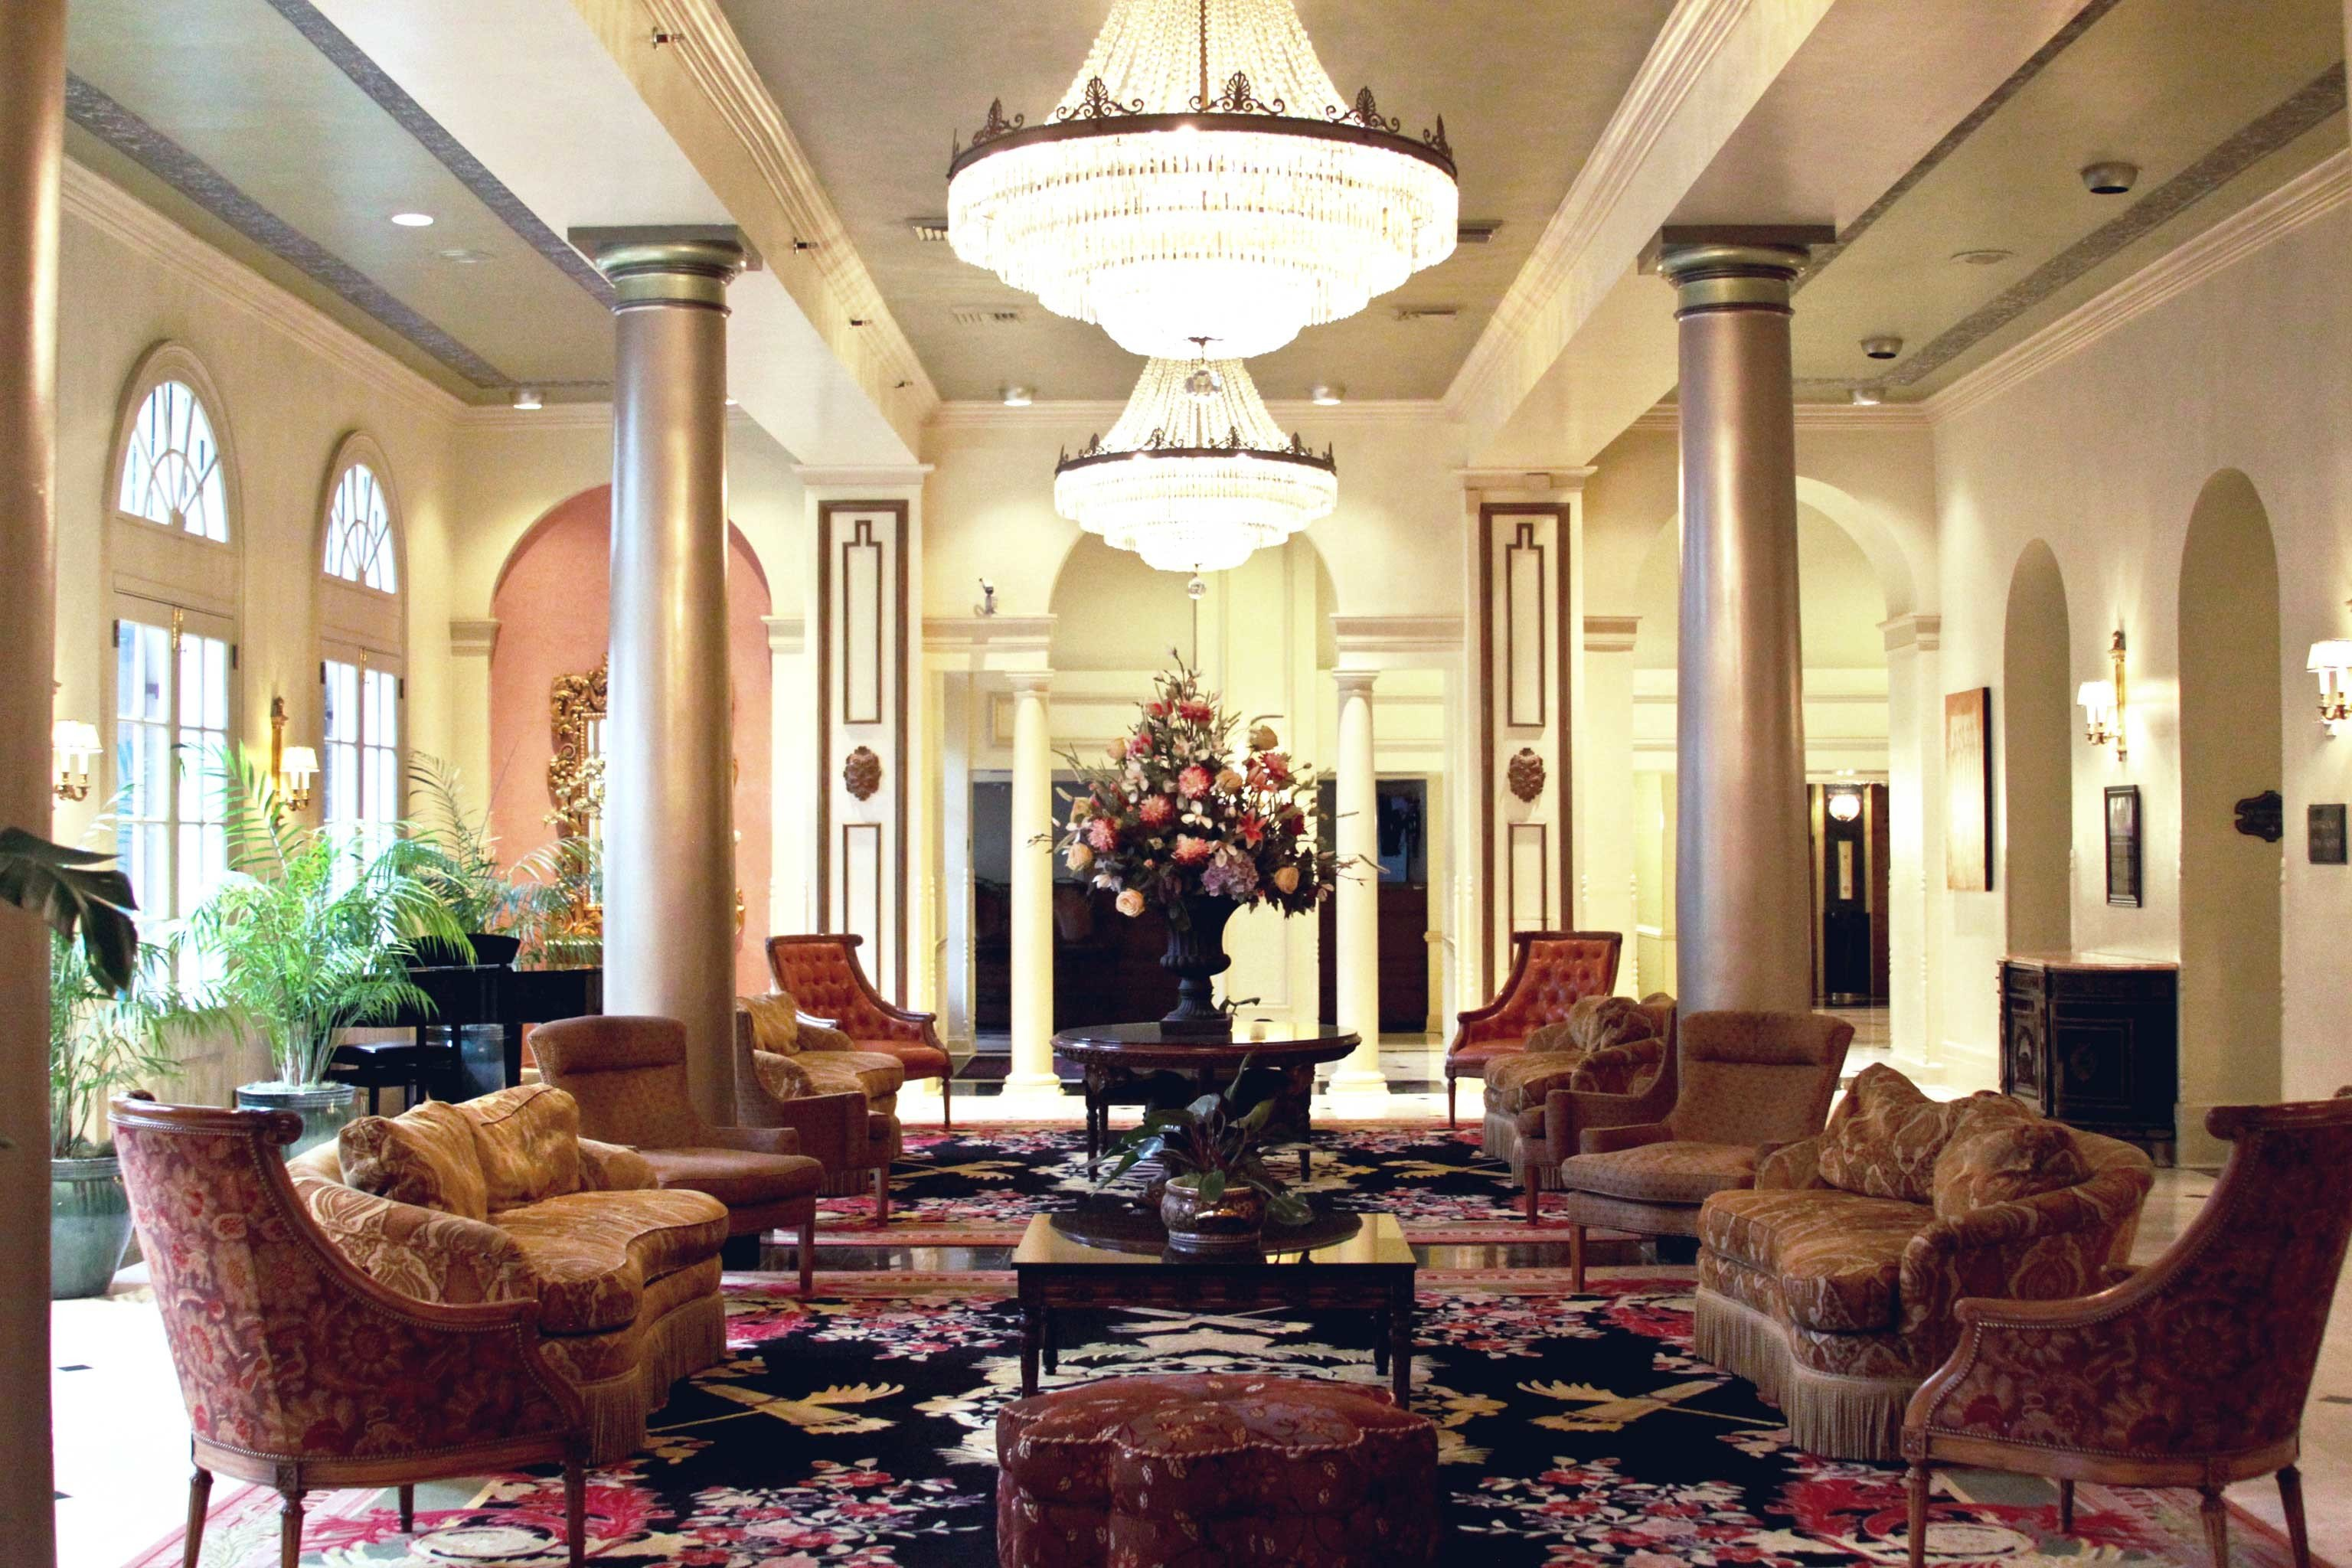 Elegant Hotels Lobby Lounge Luxury living room property home mansion palace